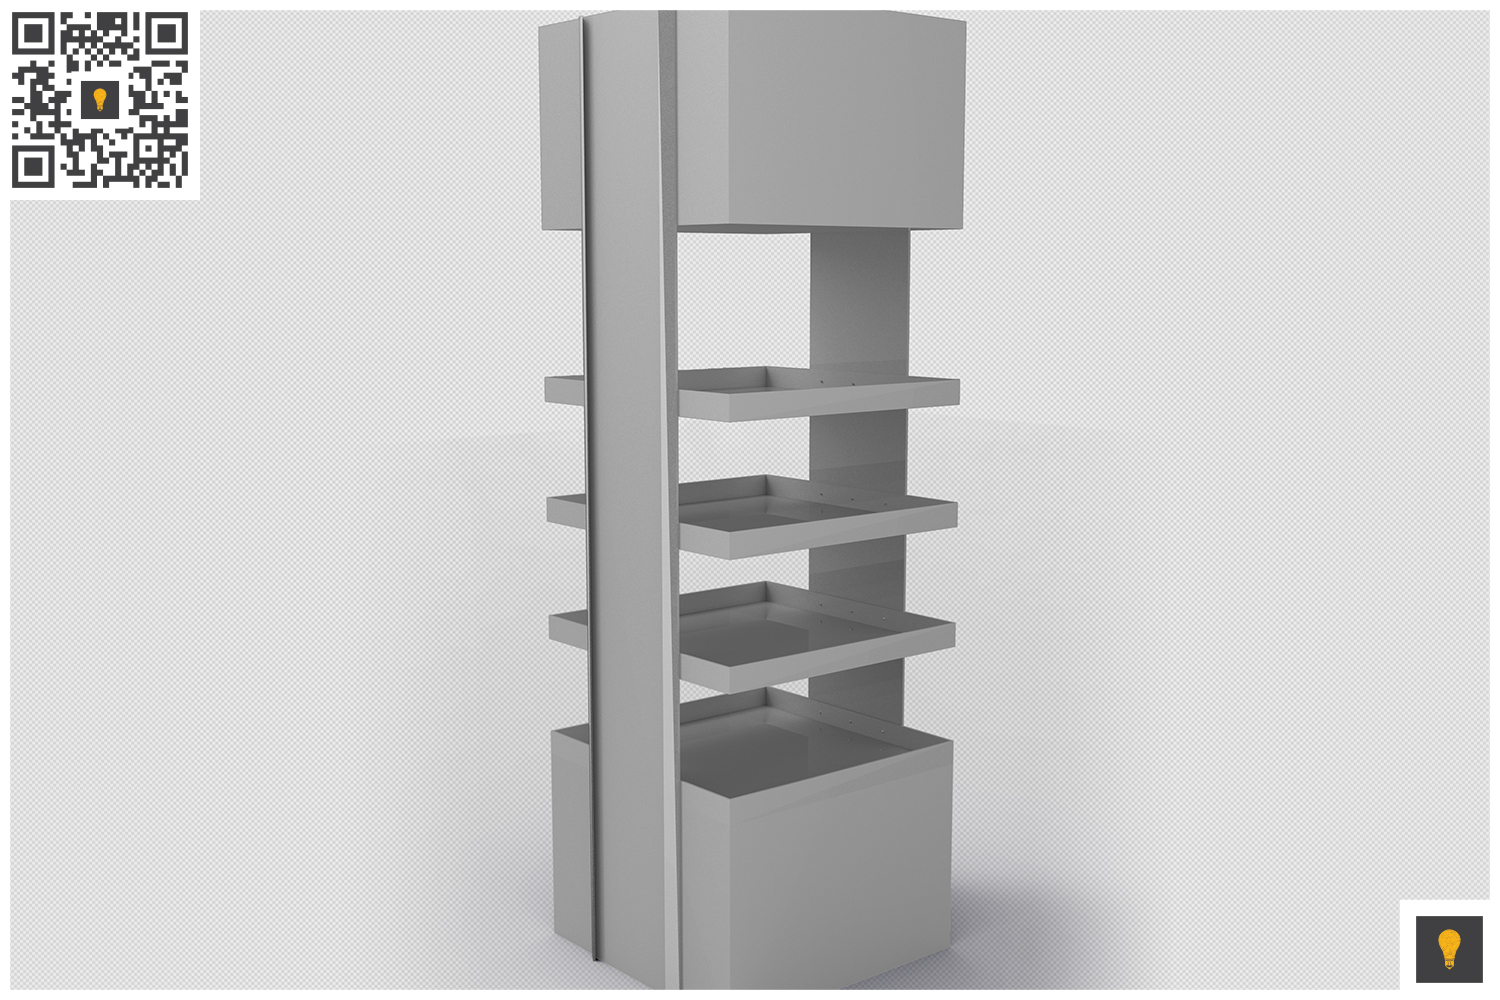 Promotional Store Shelf Stand 3D Render example image 7